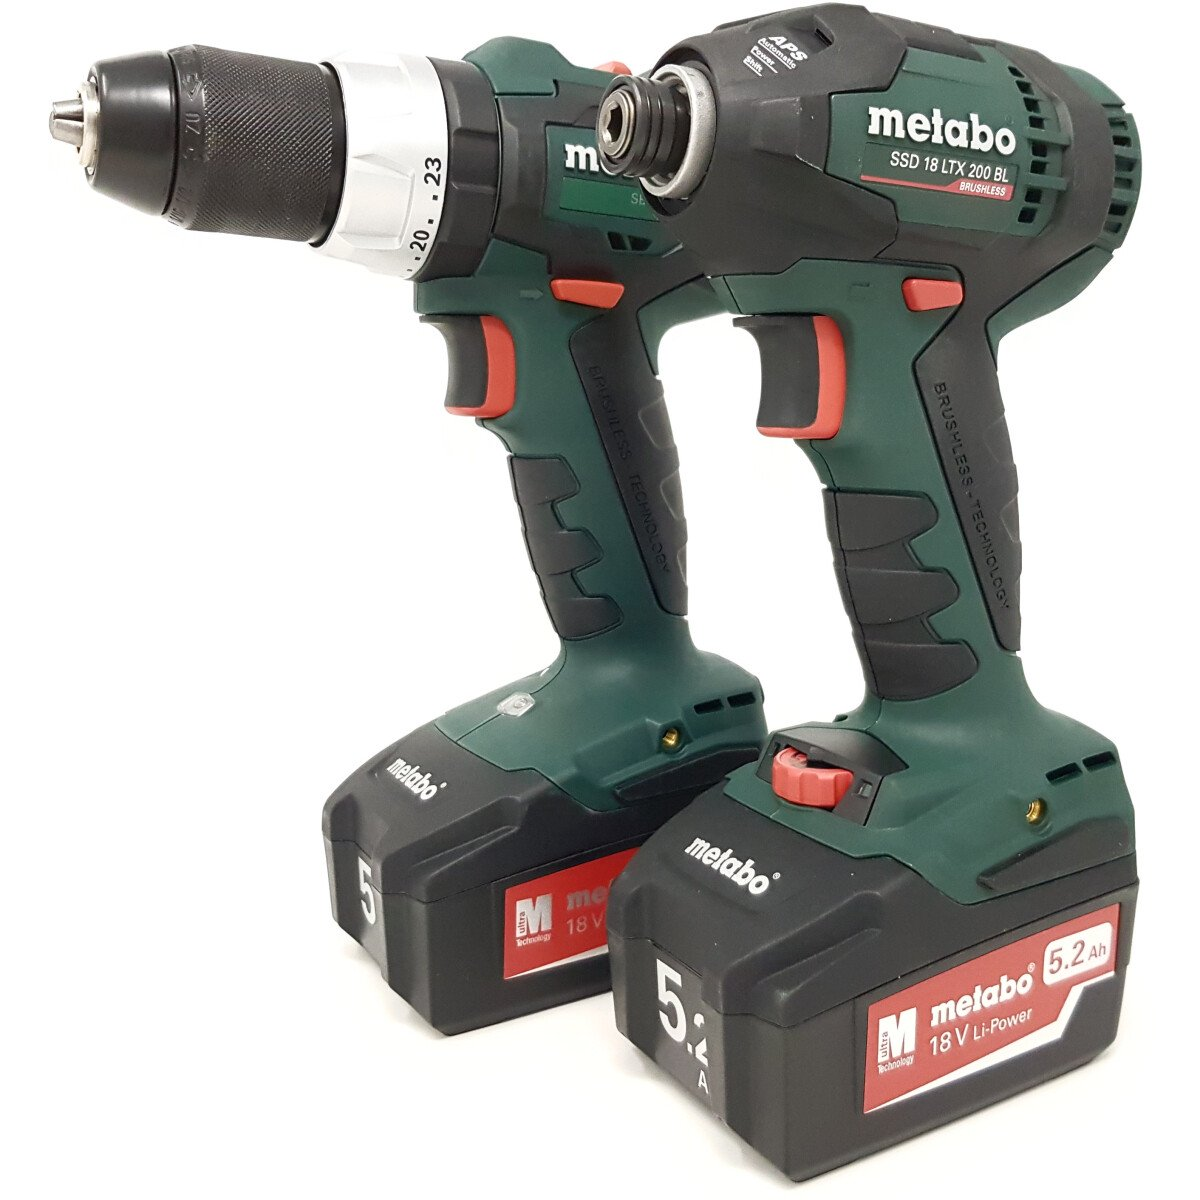 Metabo 18v Brushless Twin Kit Combi Drill + Impact Driver with 2 Batteries